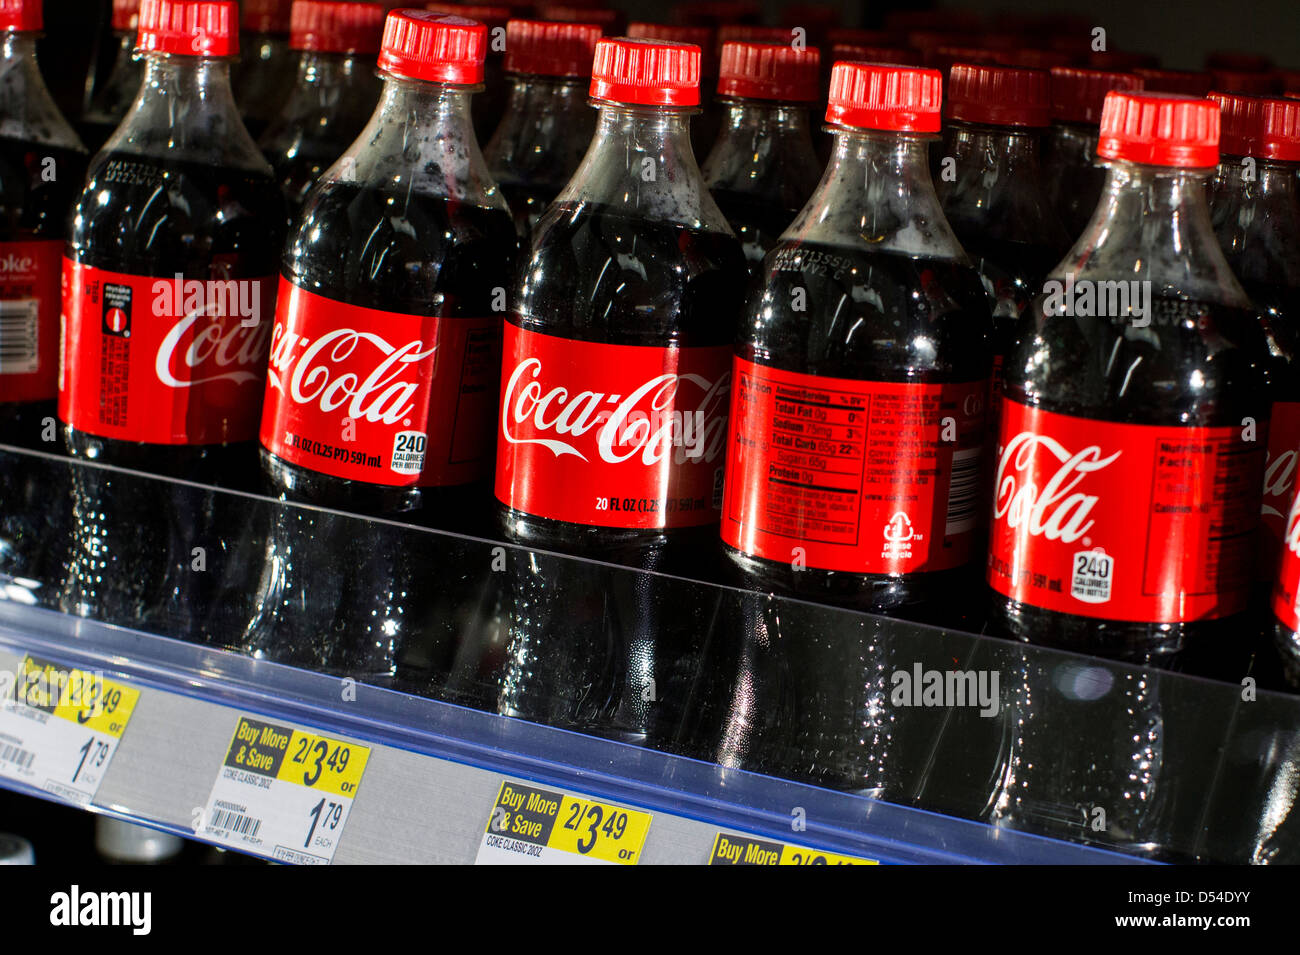 Coca-Cola products on display at a Walgreens Flagship store.  - Stock Image